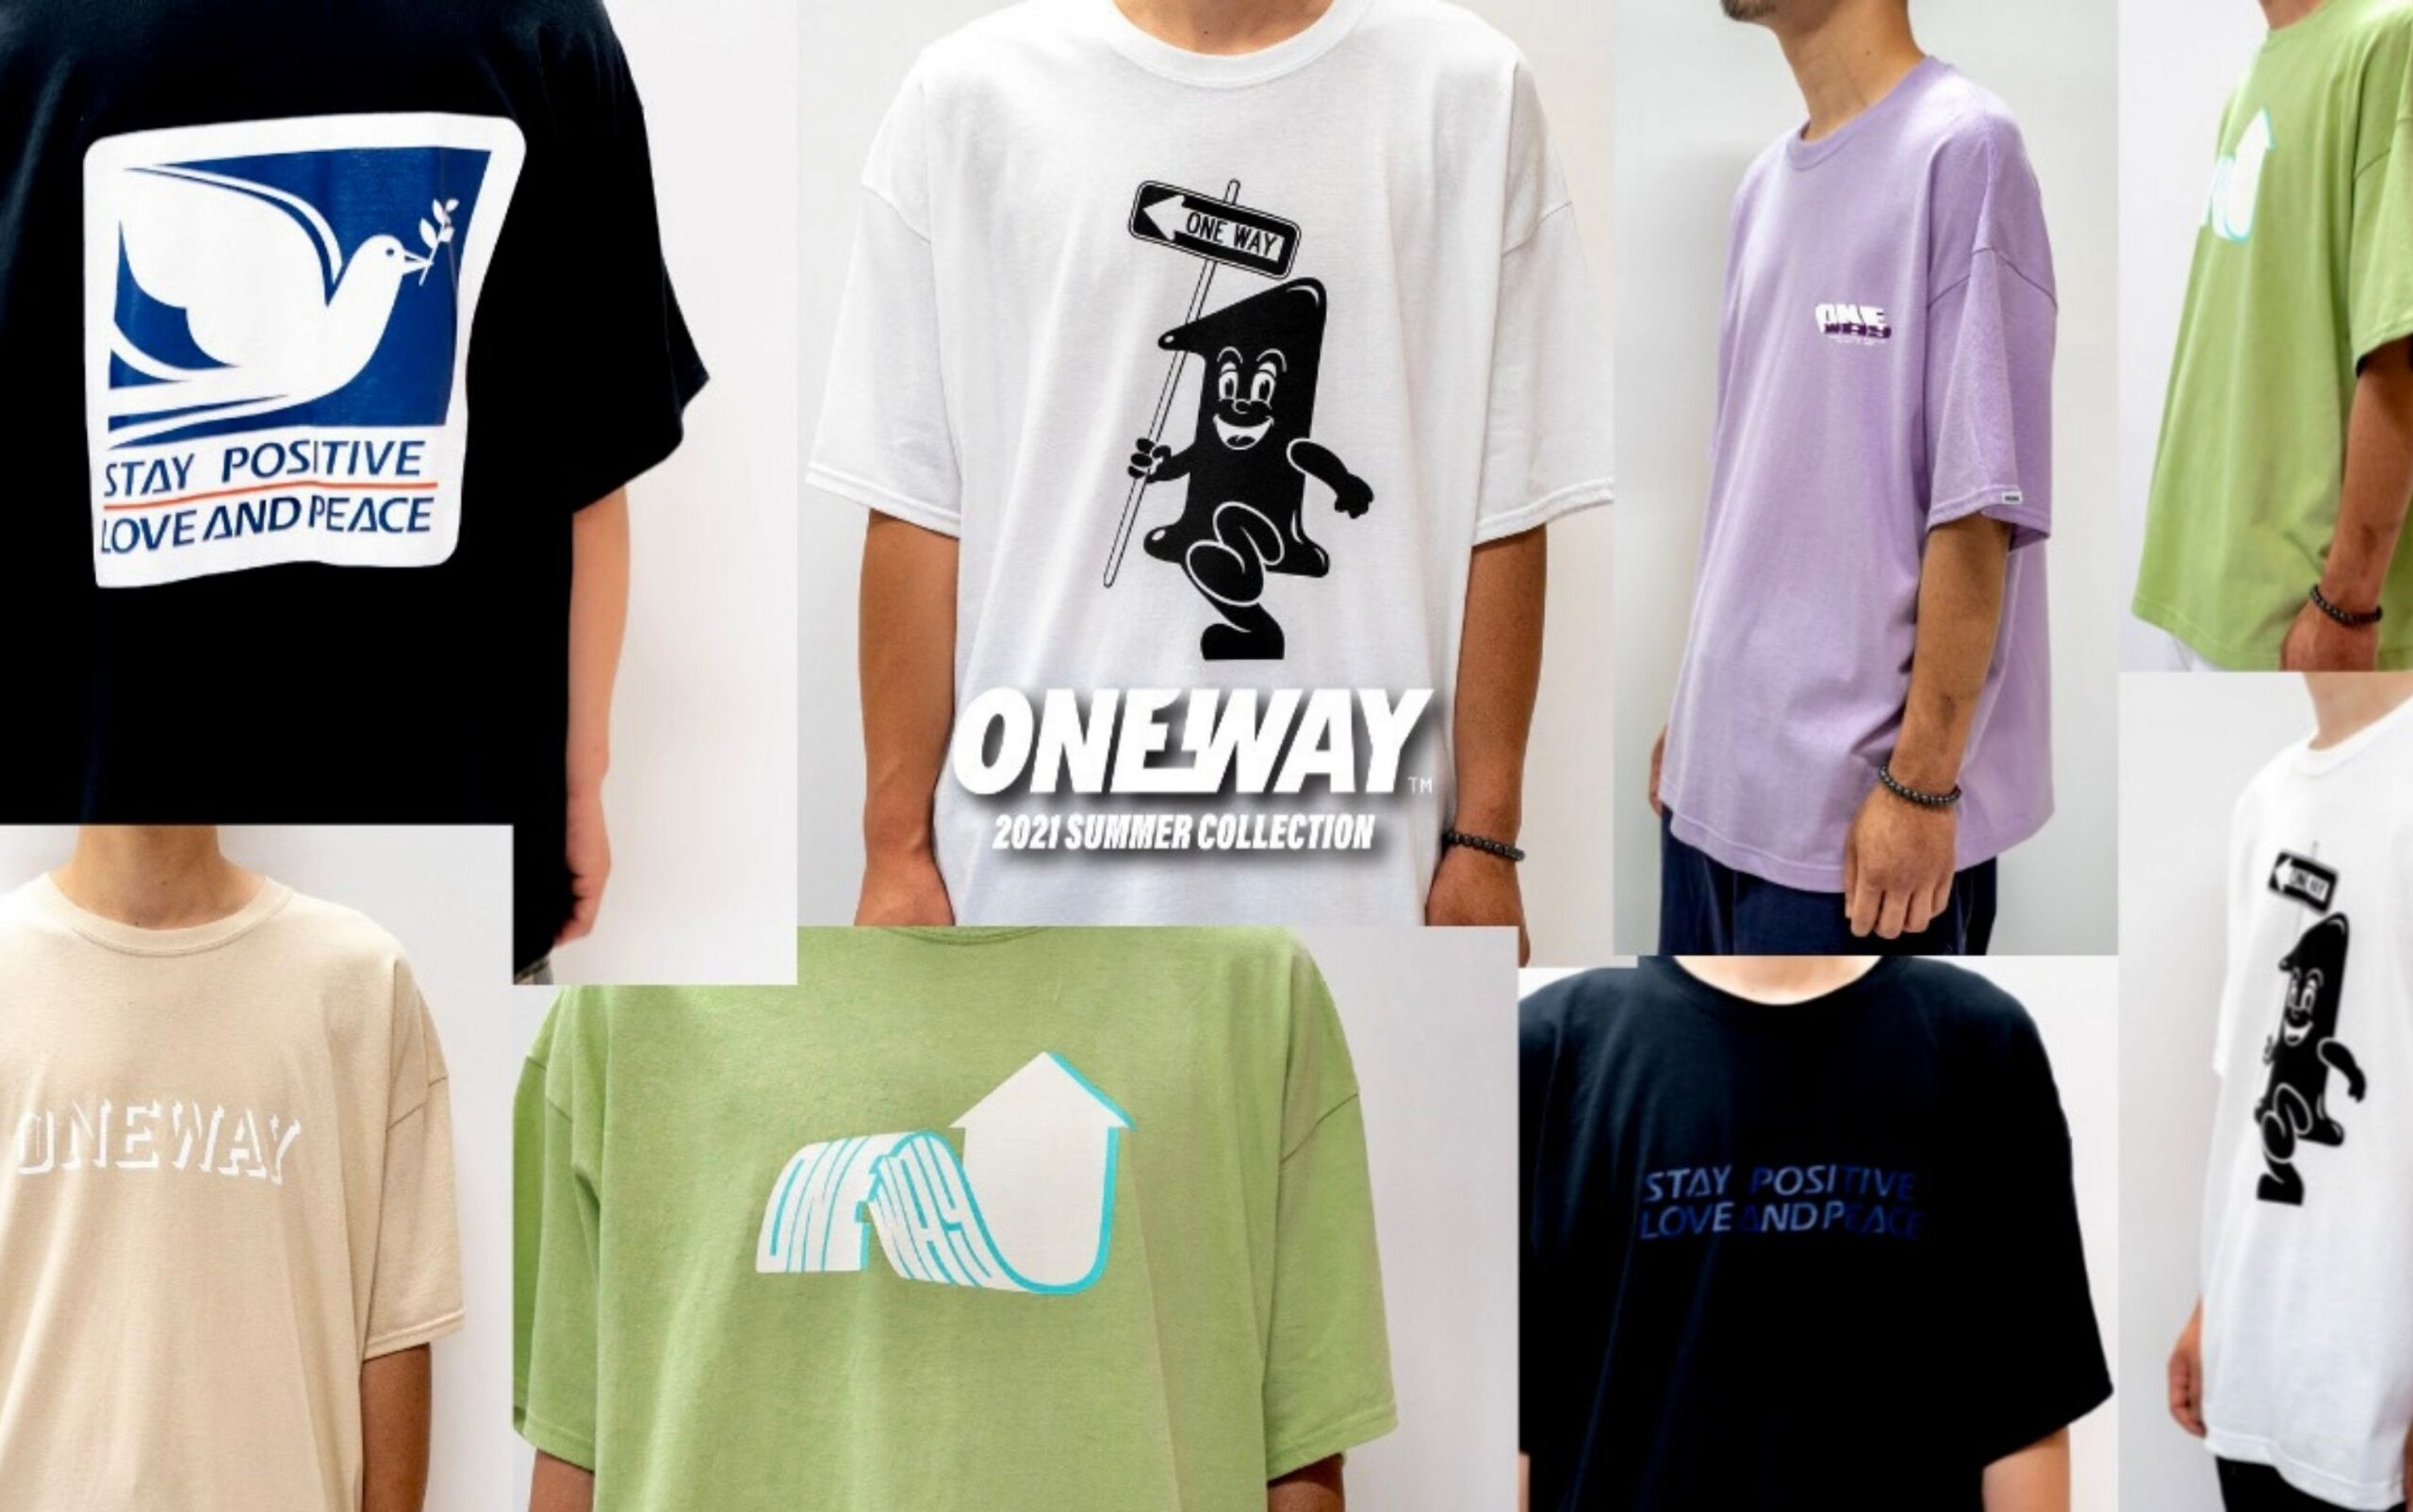 ONEWAY 2021 SUMMER COLLECTION